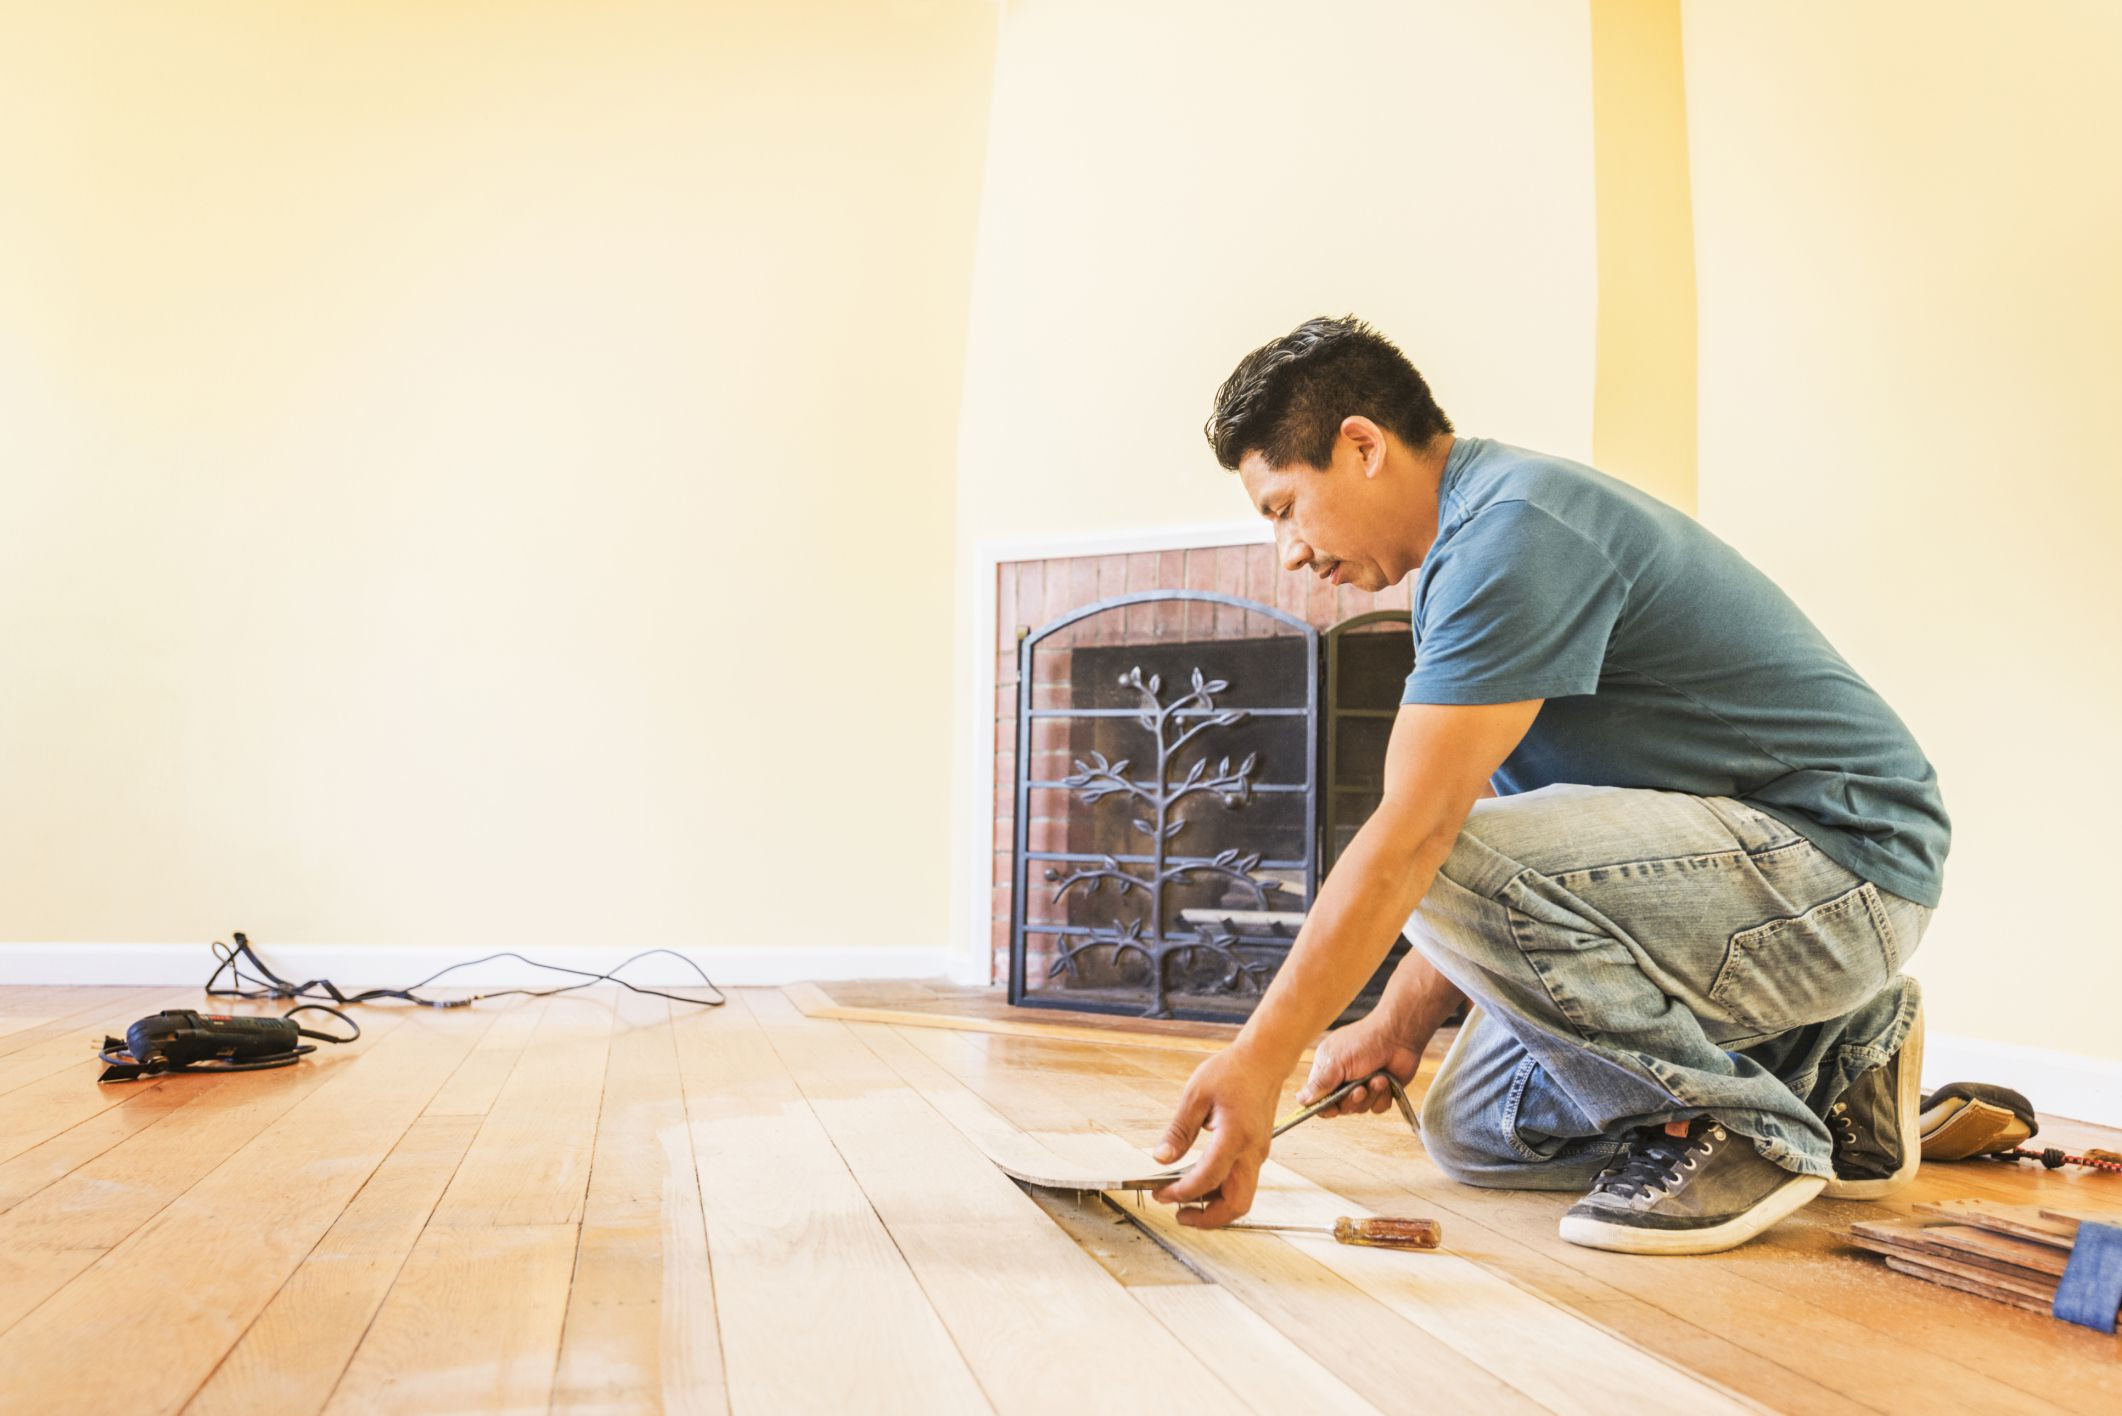 unfinished birch hardwood flooring of solid hardwood flooring costs for professional vs diy with installwoodflooring 592016327 56684d6f3df78ce1610a598a